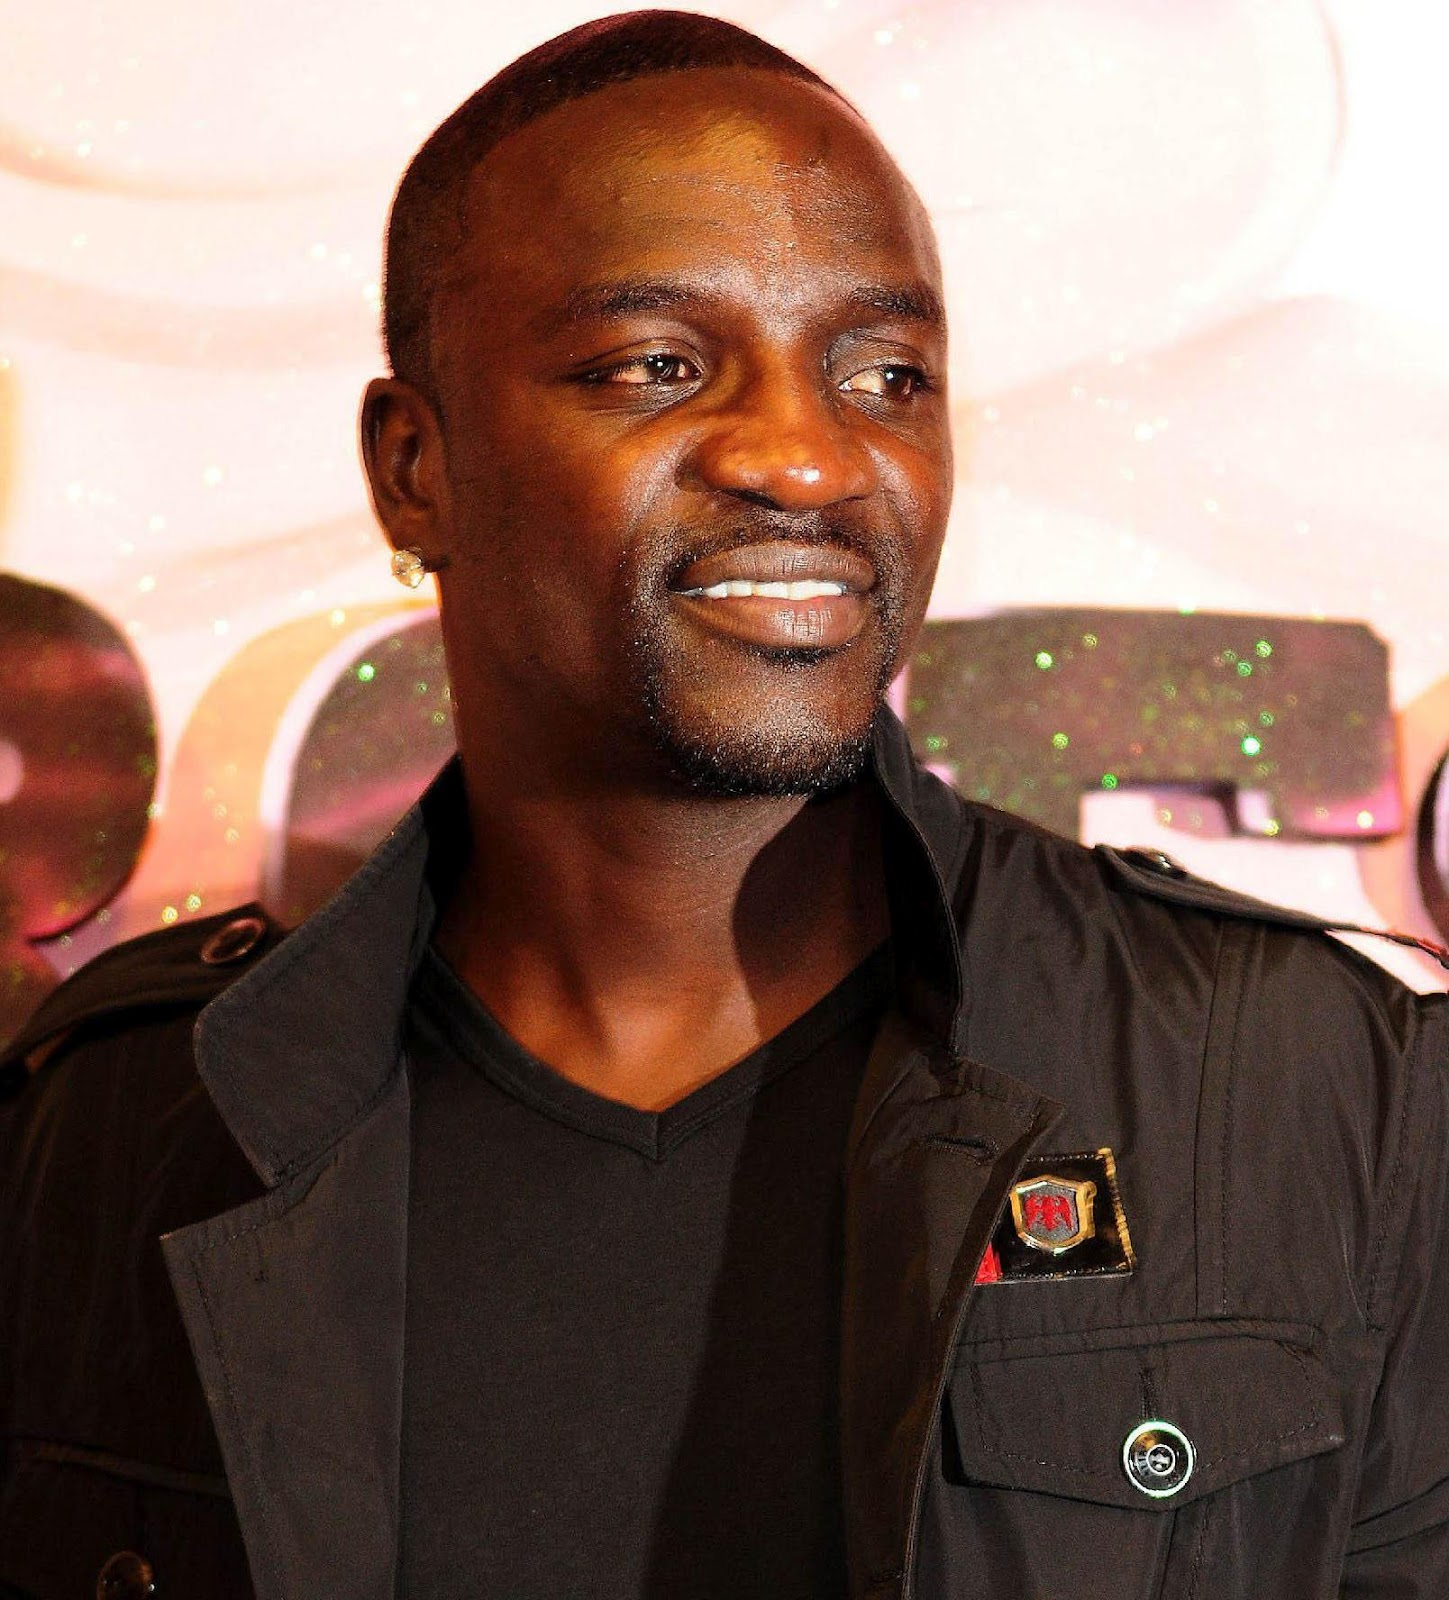 Hot Secrets: THE PSQUARE, AKON COLLABO VIDEO IS OUT